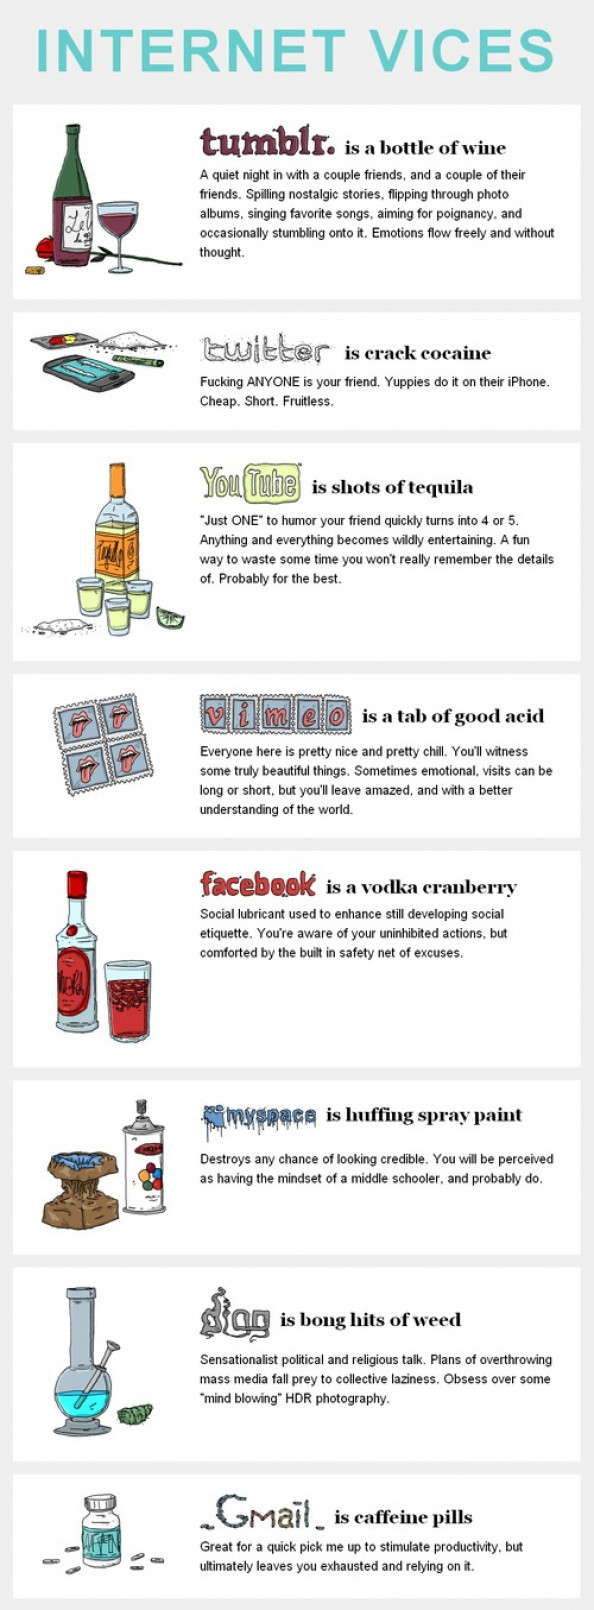 Internet Vices Infographic